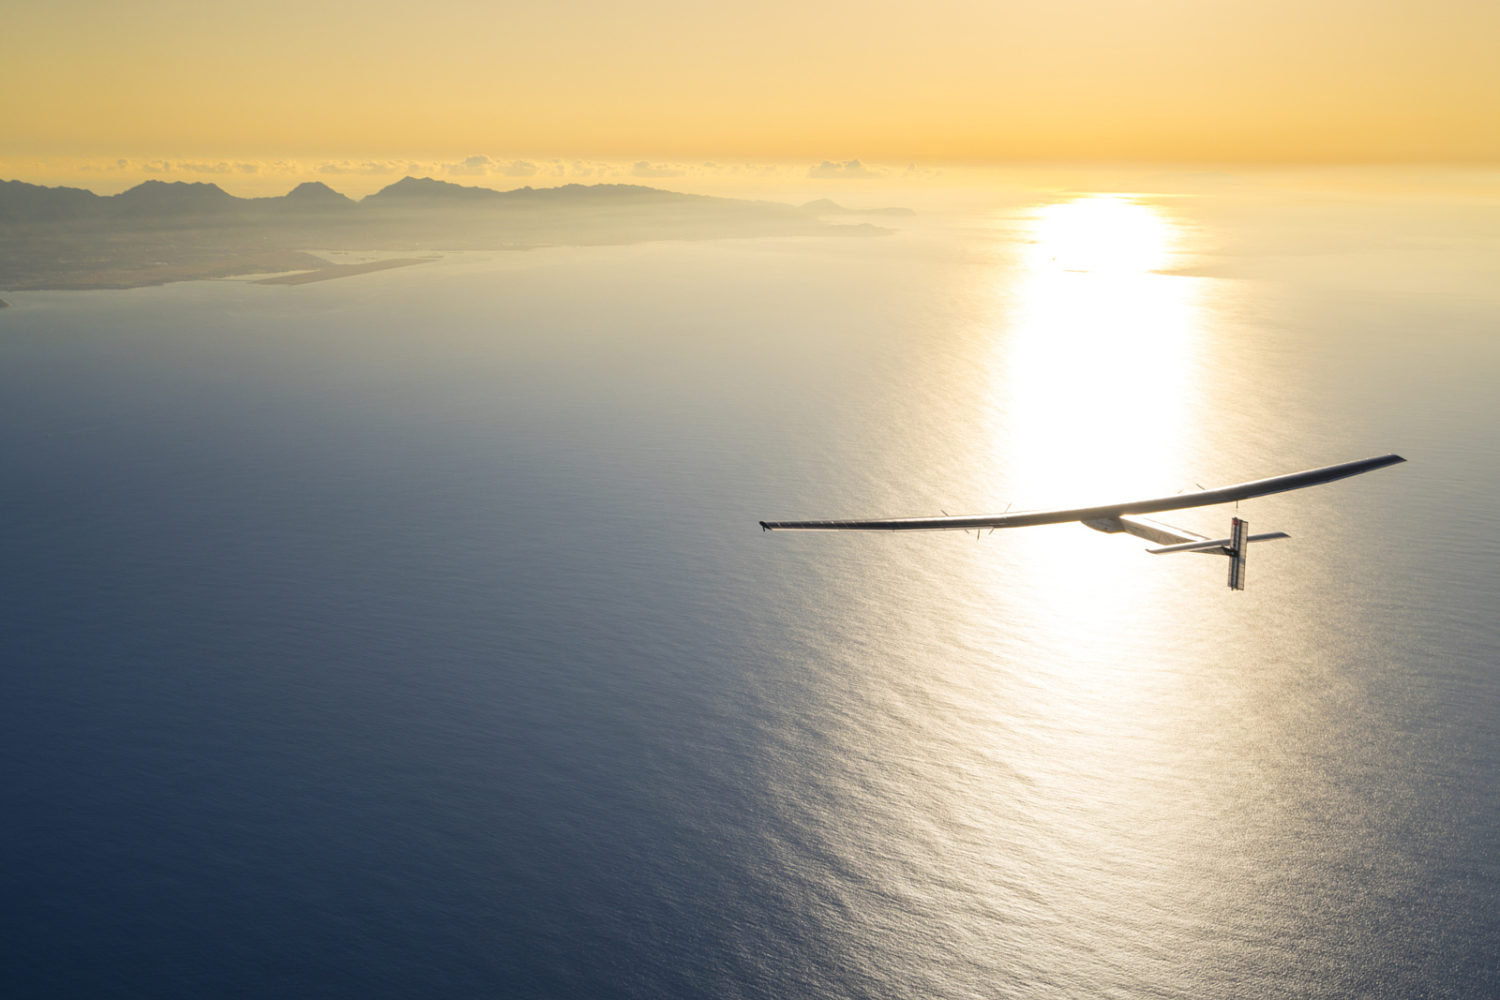 Meet the Solar Impulse Photographer Who Spent a Year on an Epic Global Adventure